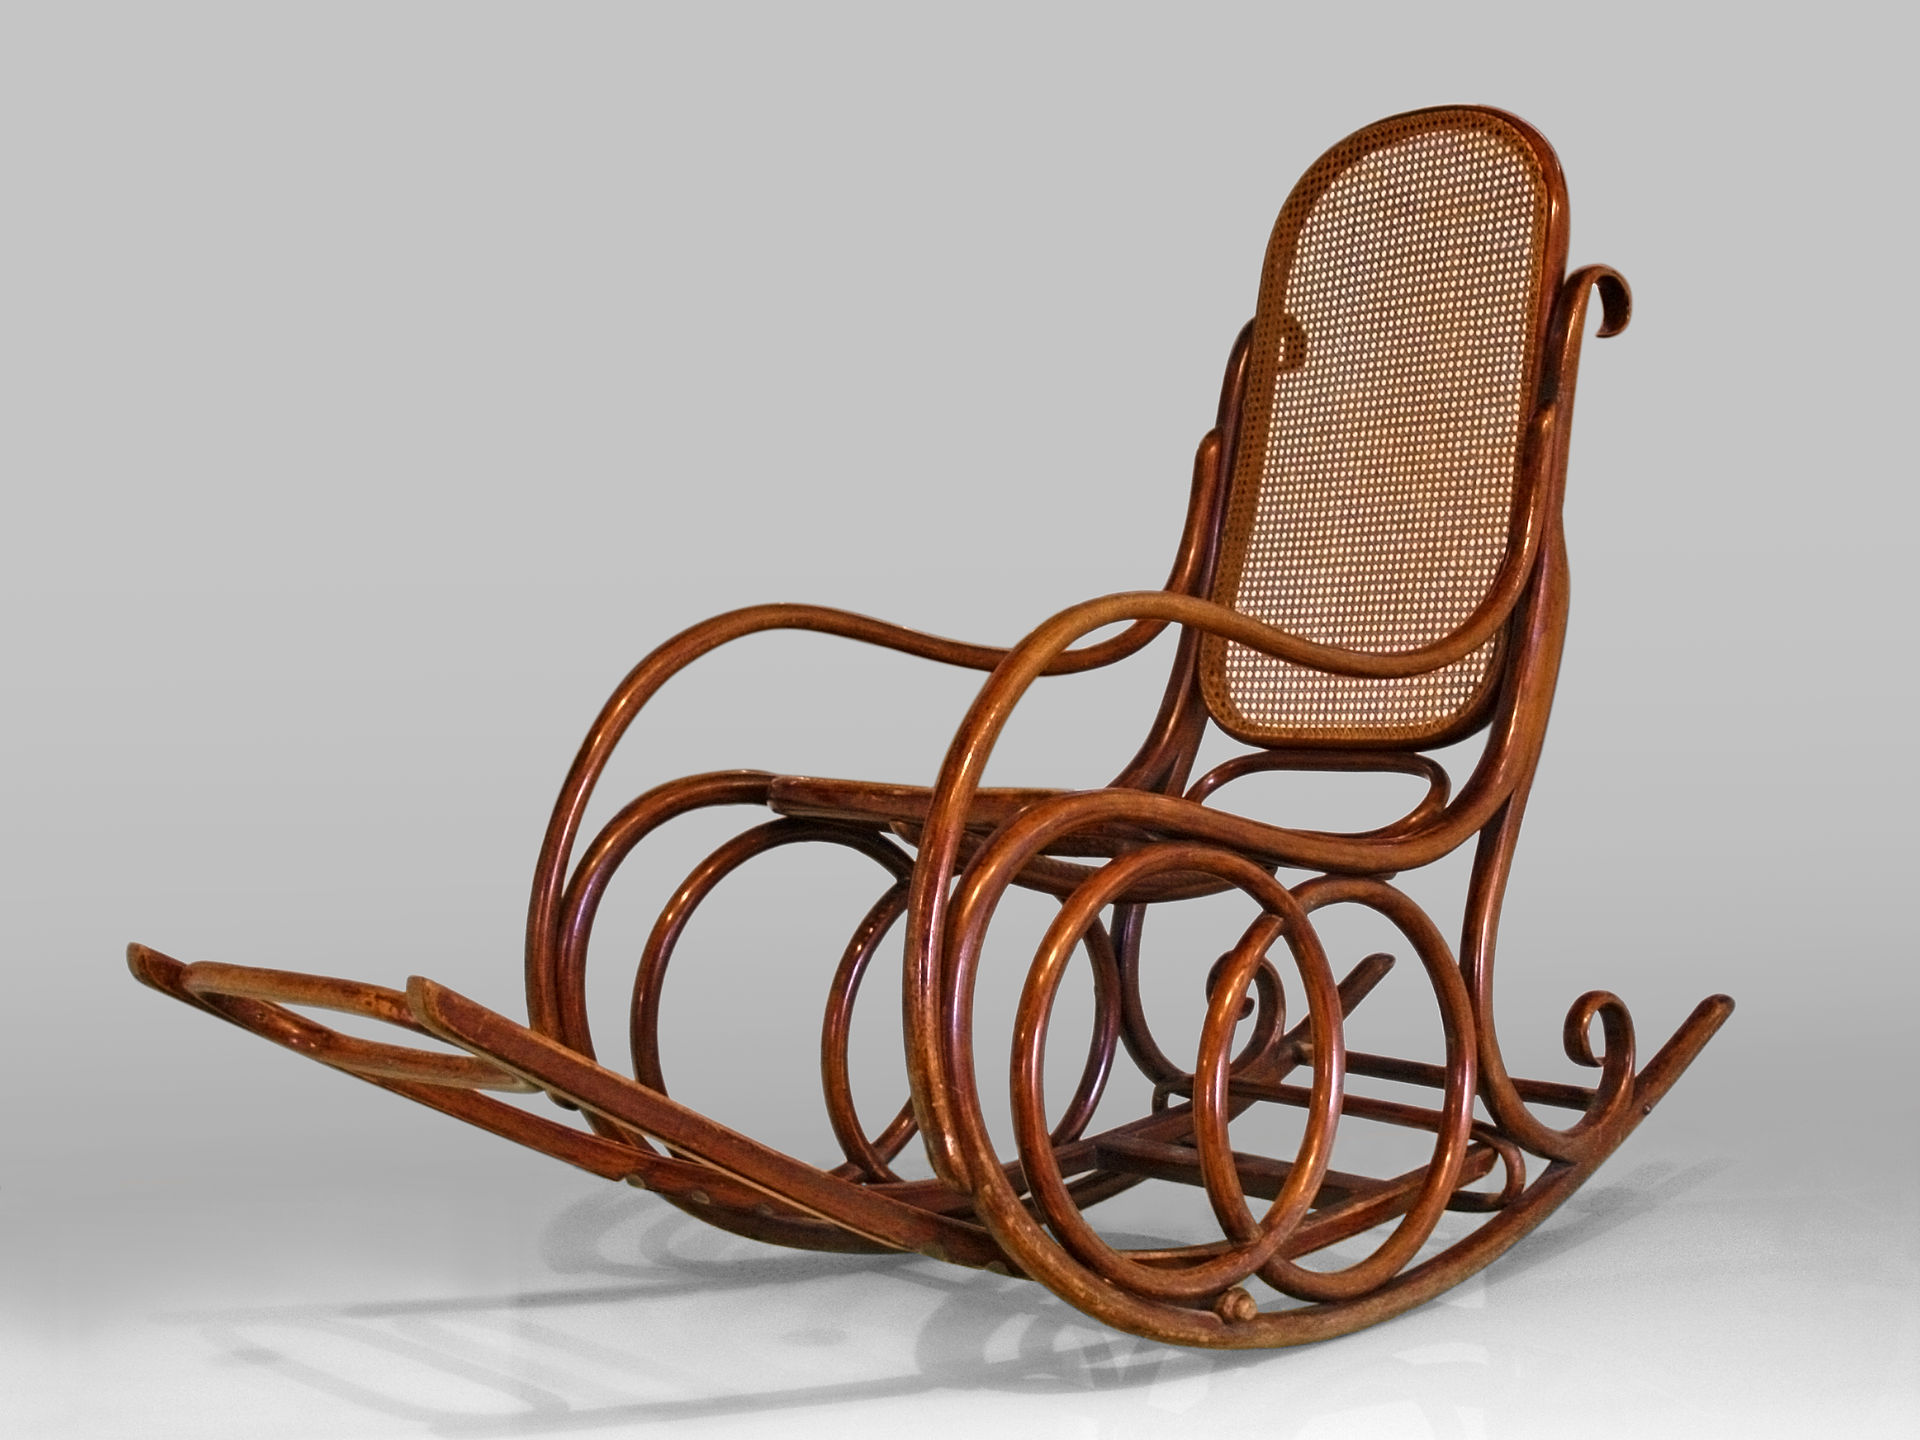 Rocking chair - Wikipedia